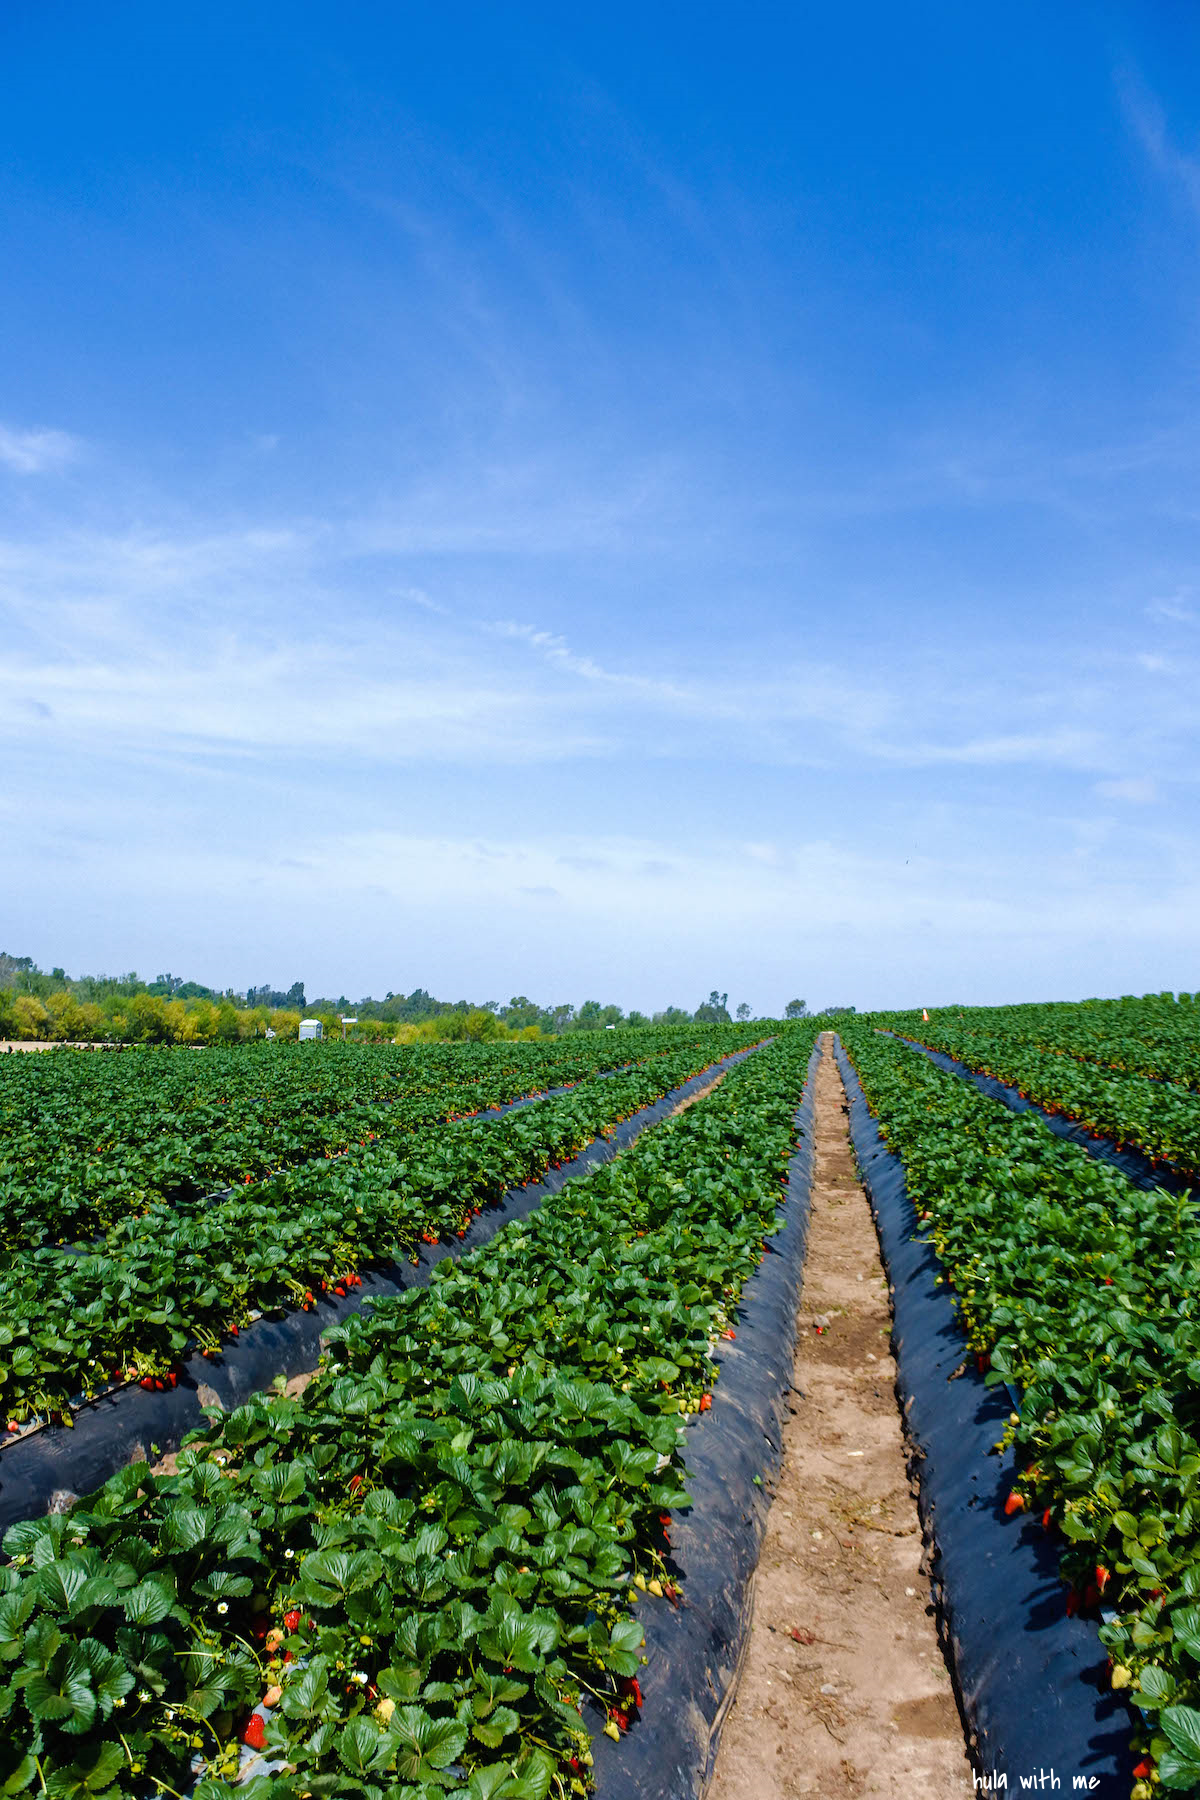 Endless rows of strawberry plants.